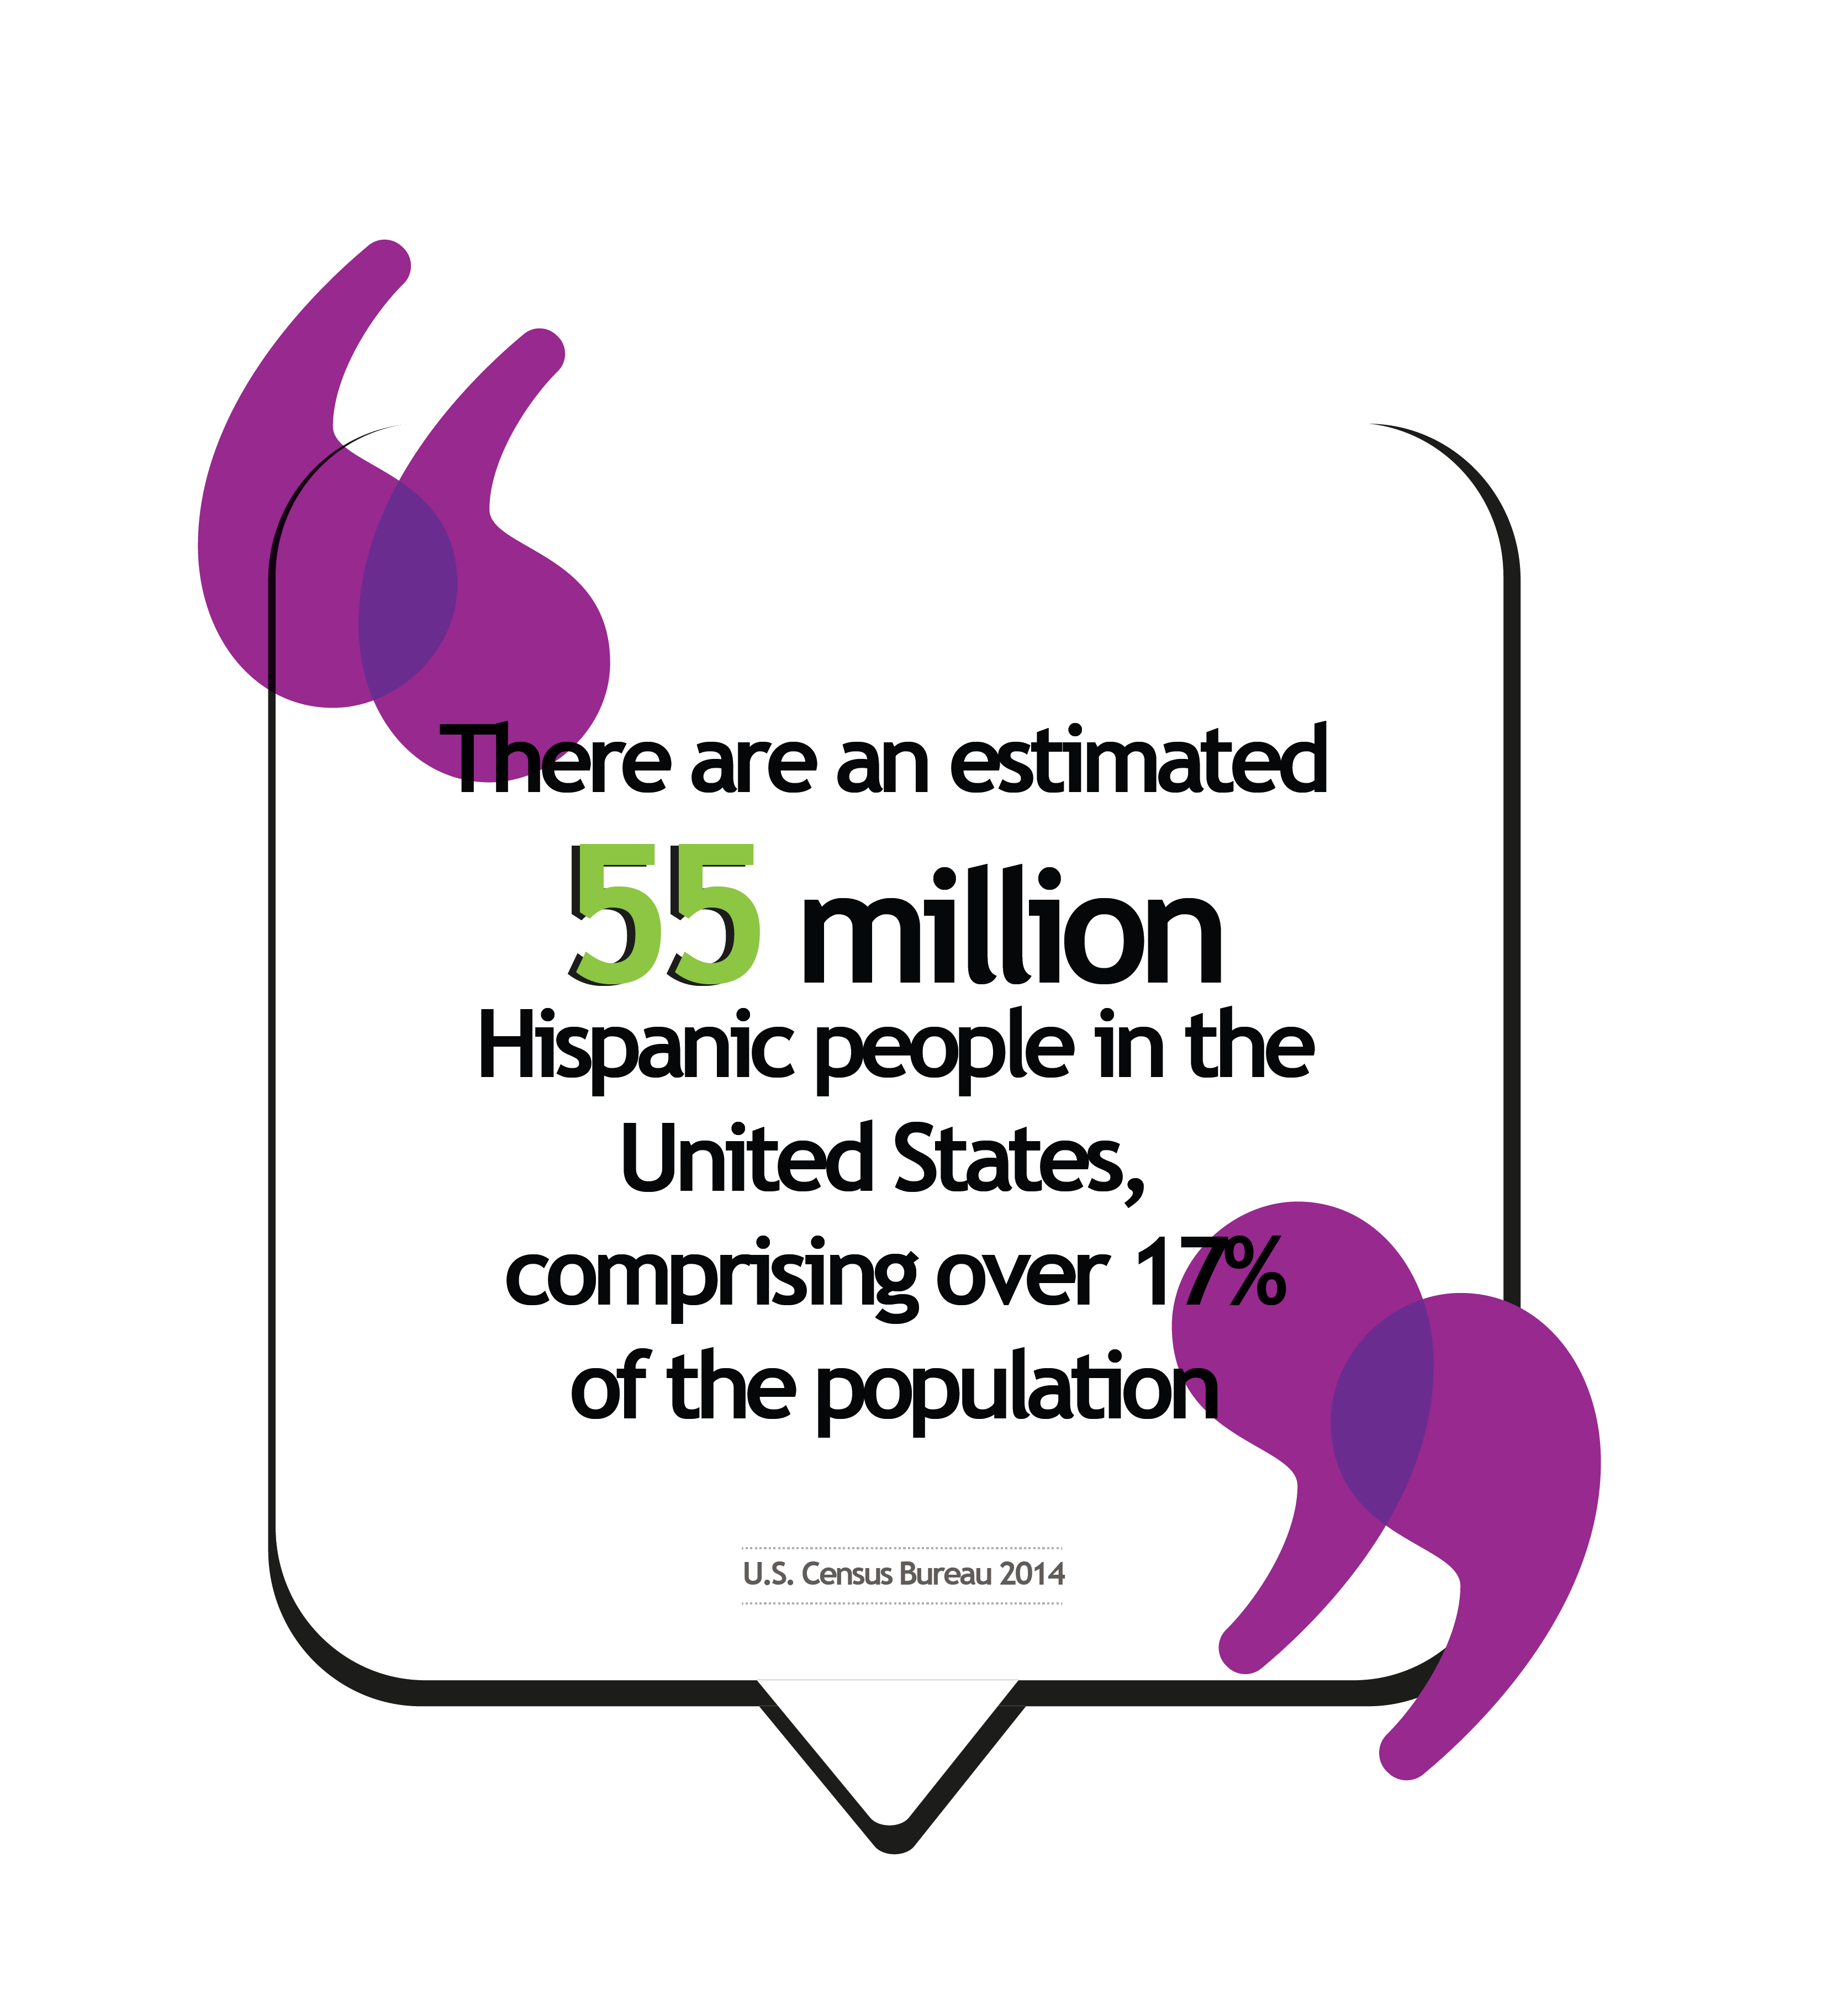 There are an estimated 55 million Hispanic people in the United States, comprising over 17% of the population.